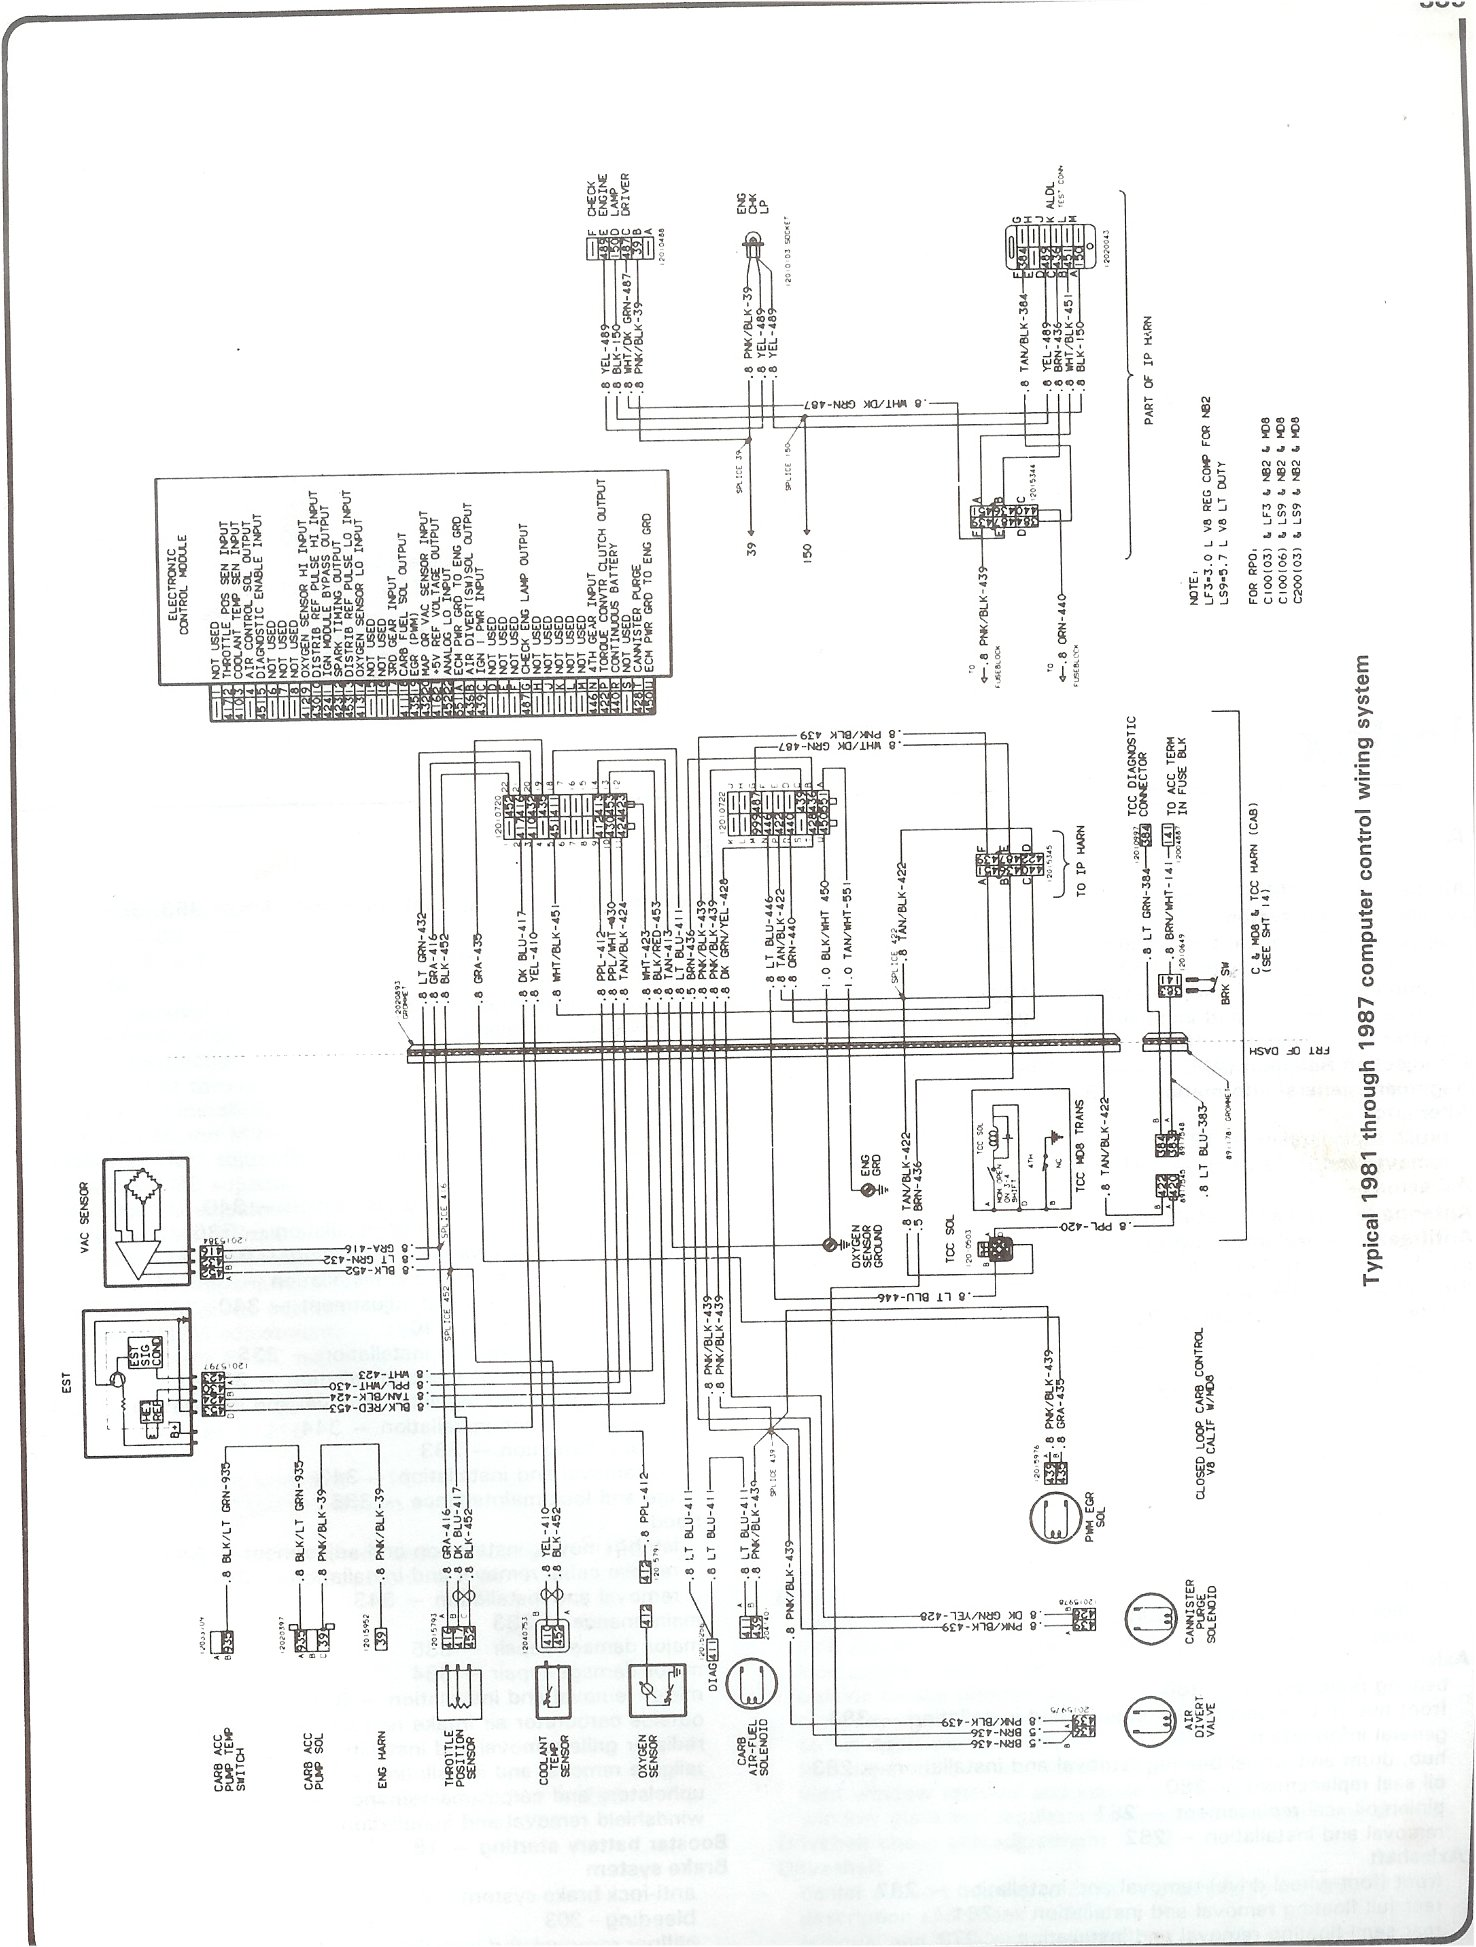 81 87_computer_control_wiring complete 73 87 wiring diagrams painless wiring harness for 85 chevy pickup at n-0.co